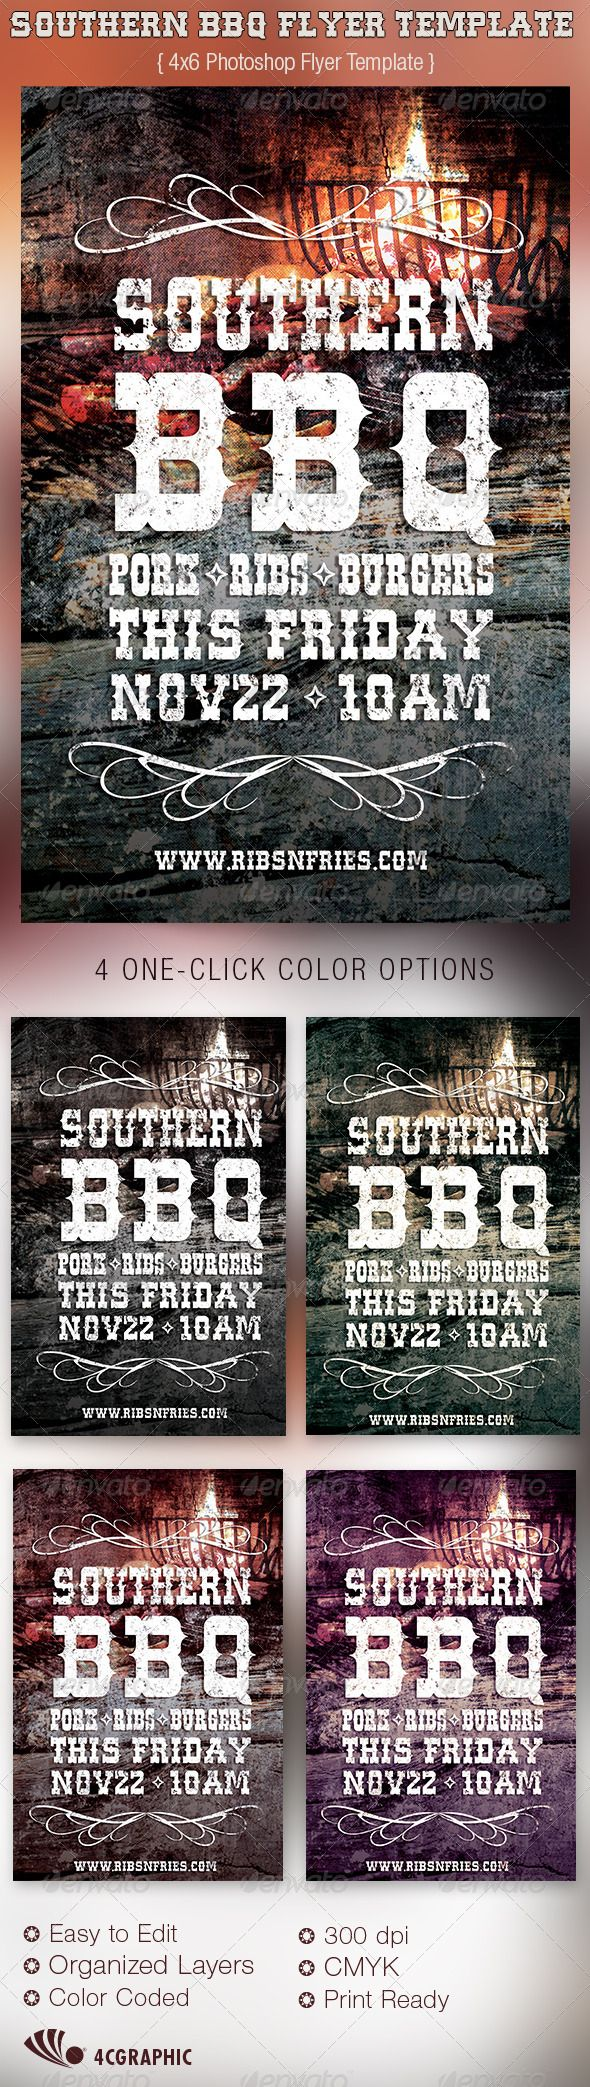 best images about country western print templates 17 best images about country western print templates program template flyer template and beer fest